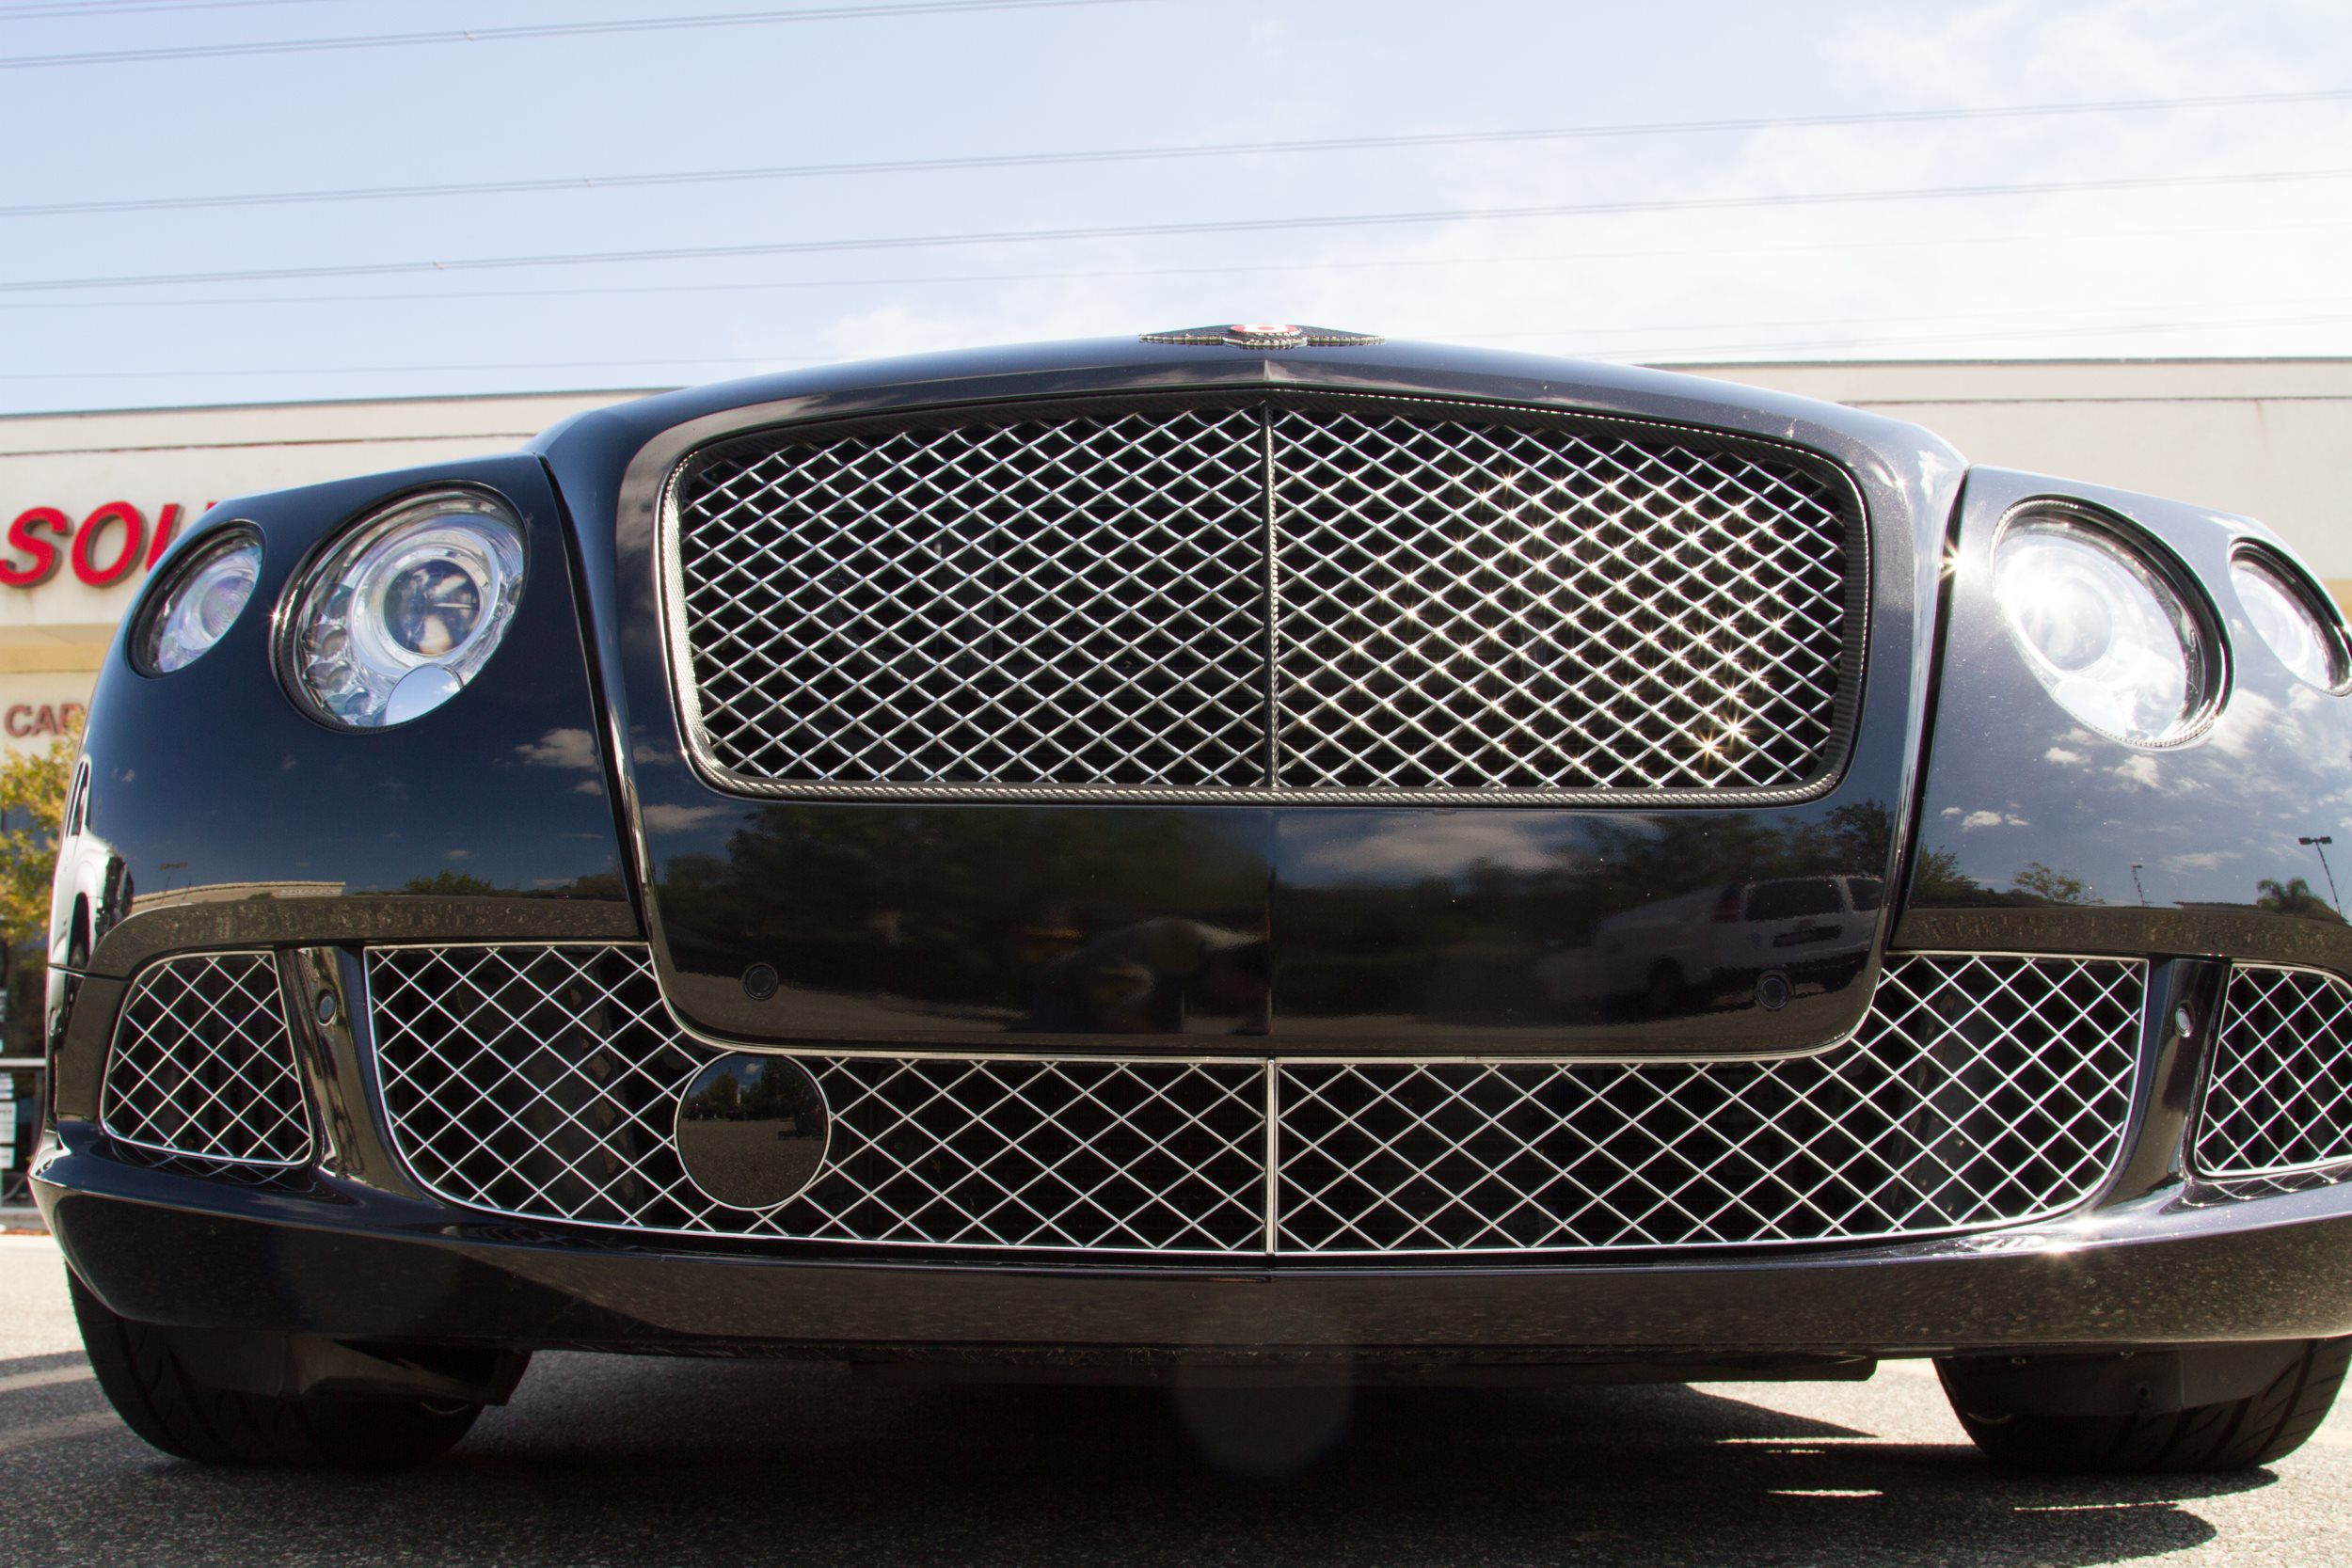 buy well shiny fancy to continental bentley with upon as vehicles